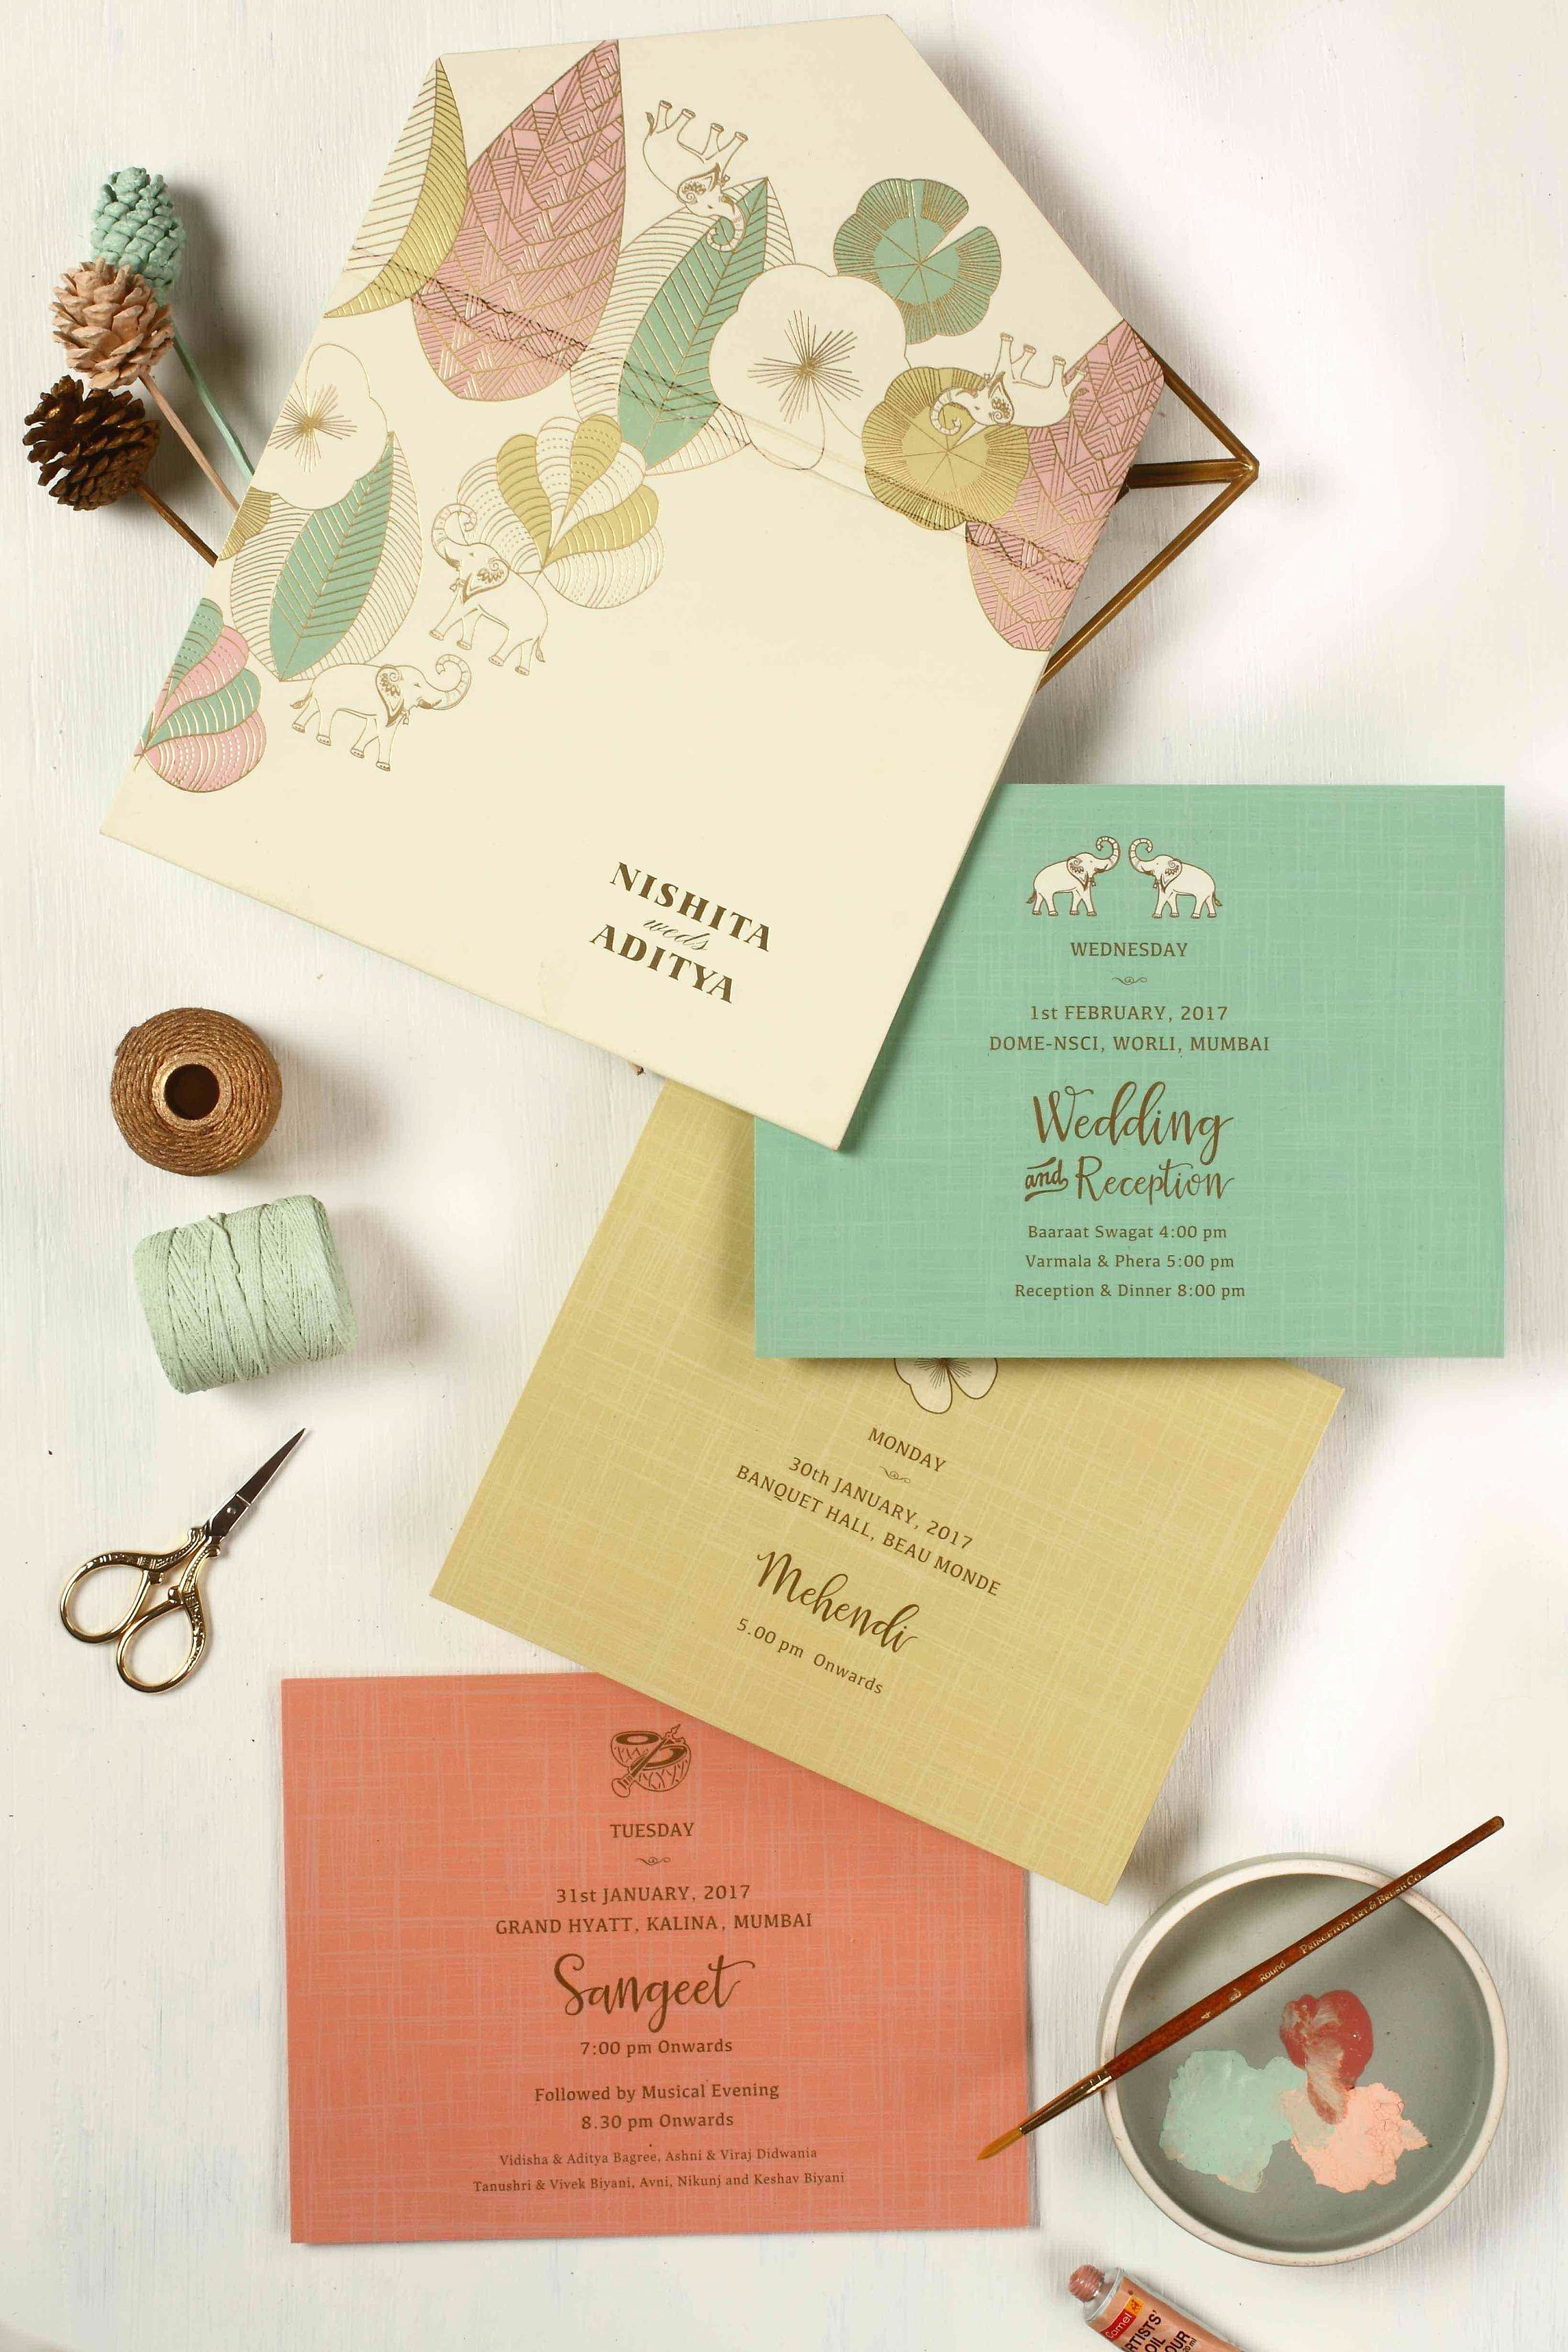 Marriage Invitation Card Design Fresh the Best Indian Wedding Card Designs We Ve Ever Seen